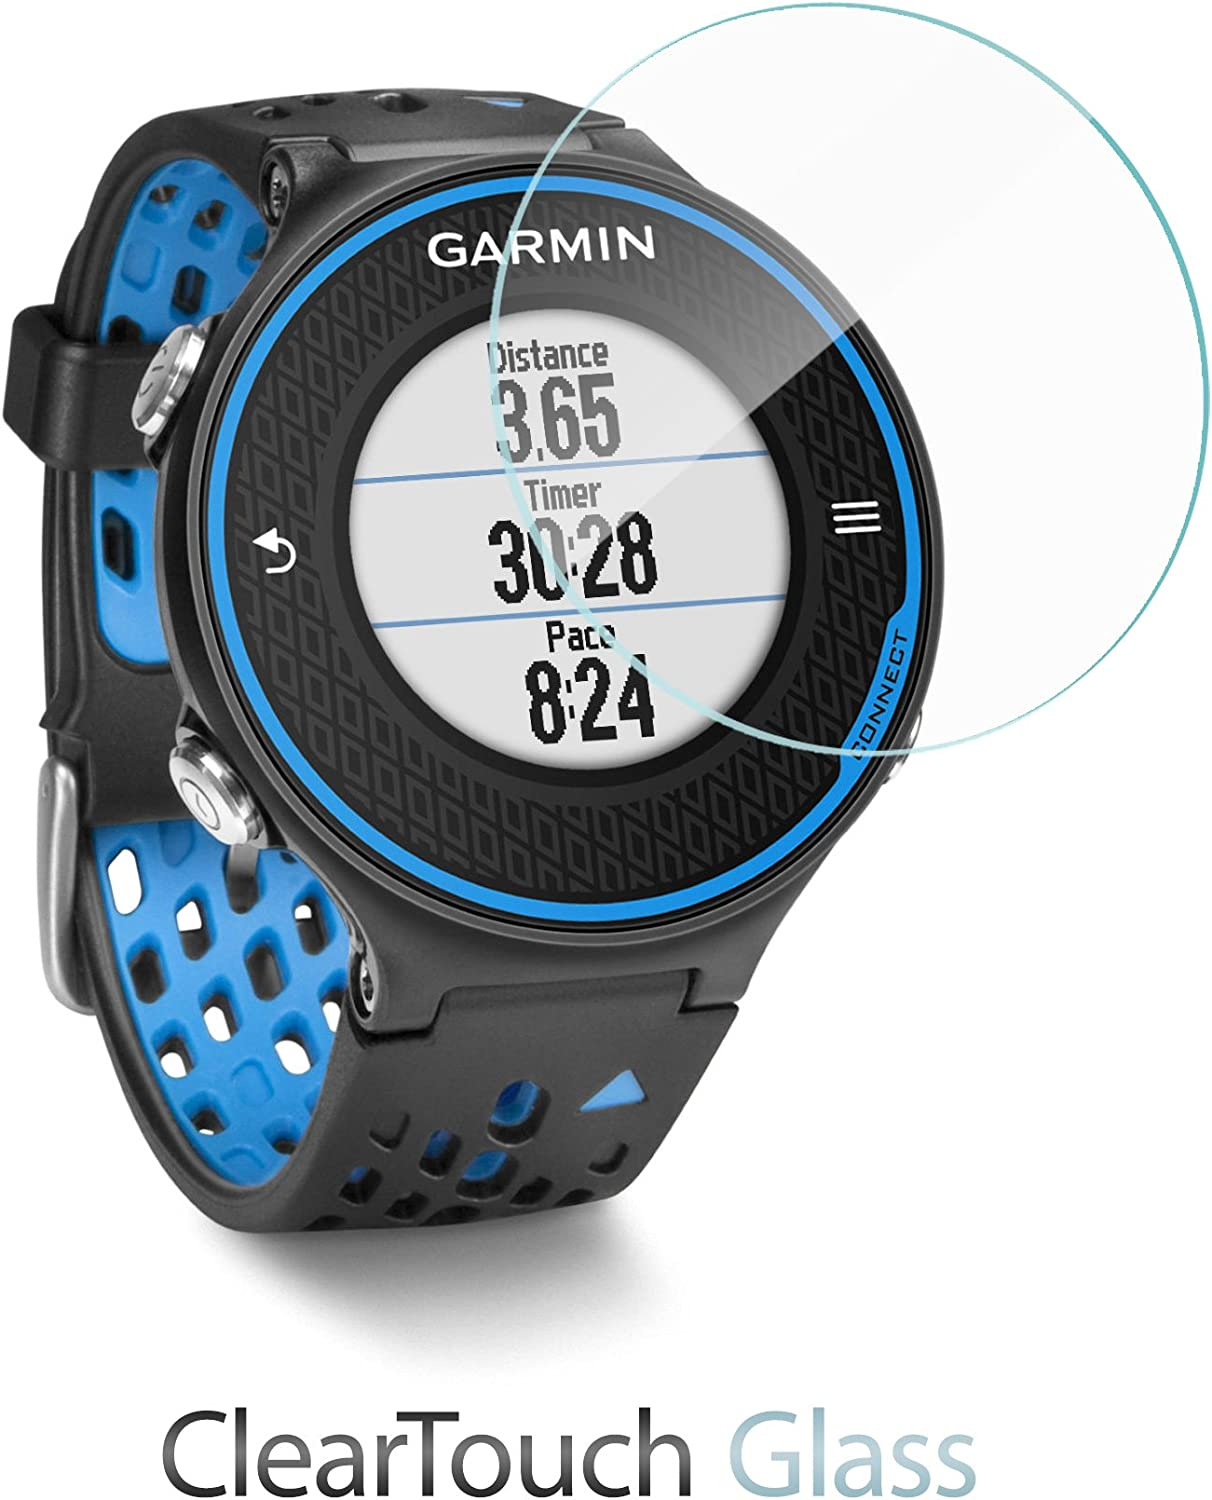 BoxWave/® ClearTouch Glass 9H Tempered Glass Screen Protection for Garmin Forerunner 230 Garmin Forerunner 230 Screen Protector